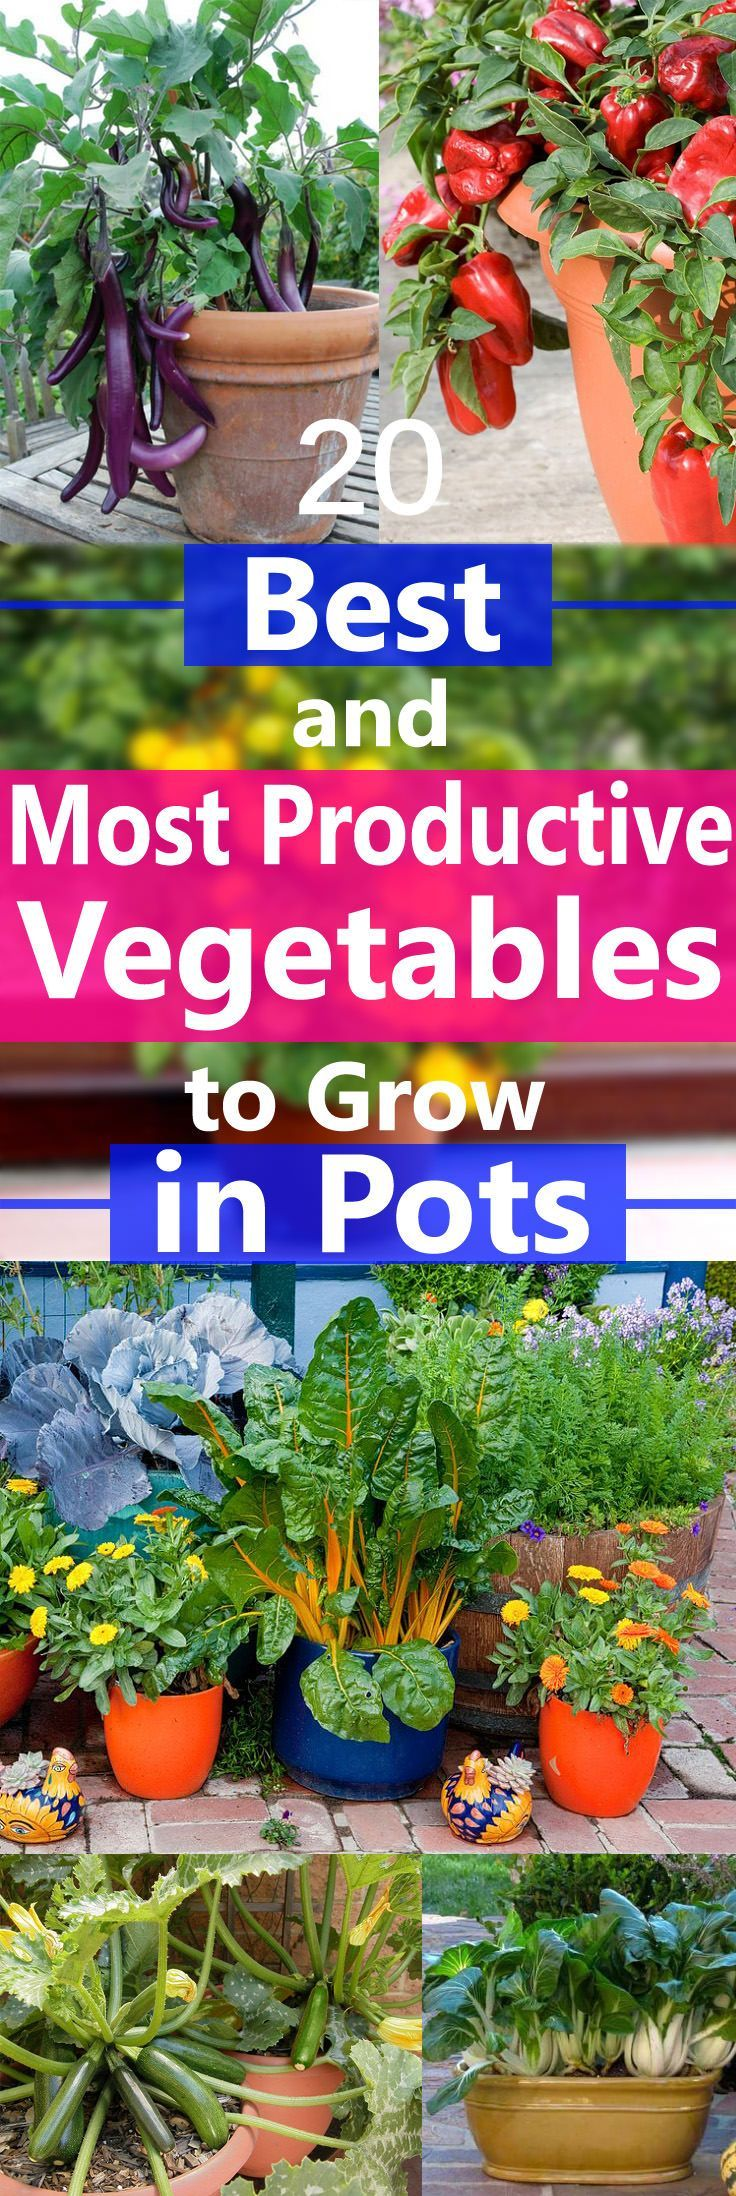 Vegetable container garden ideas - Best Most Productive Vegetables To Grow In Pots